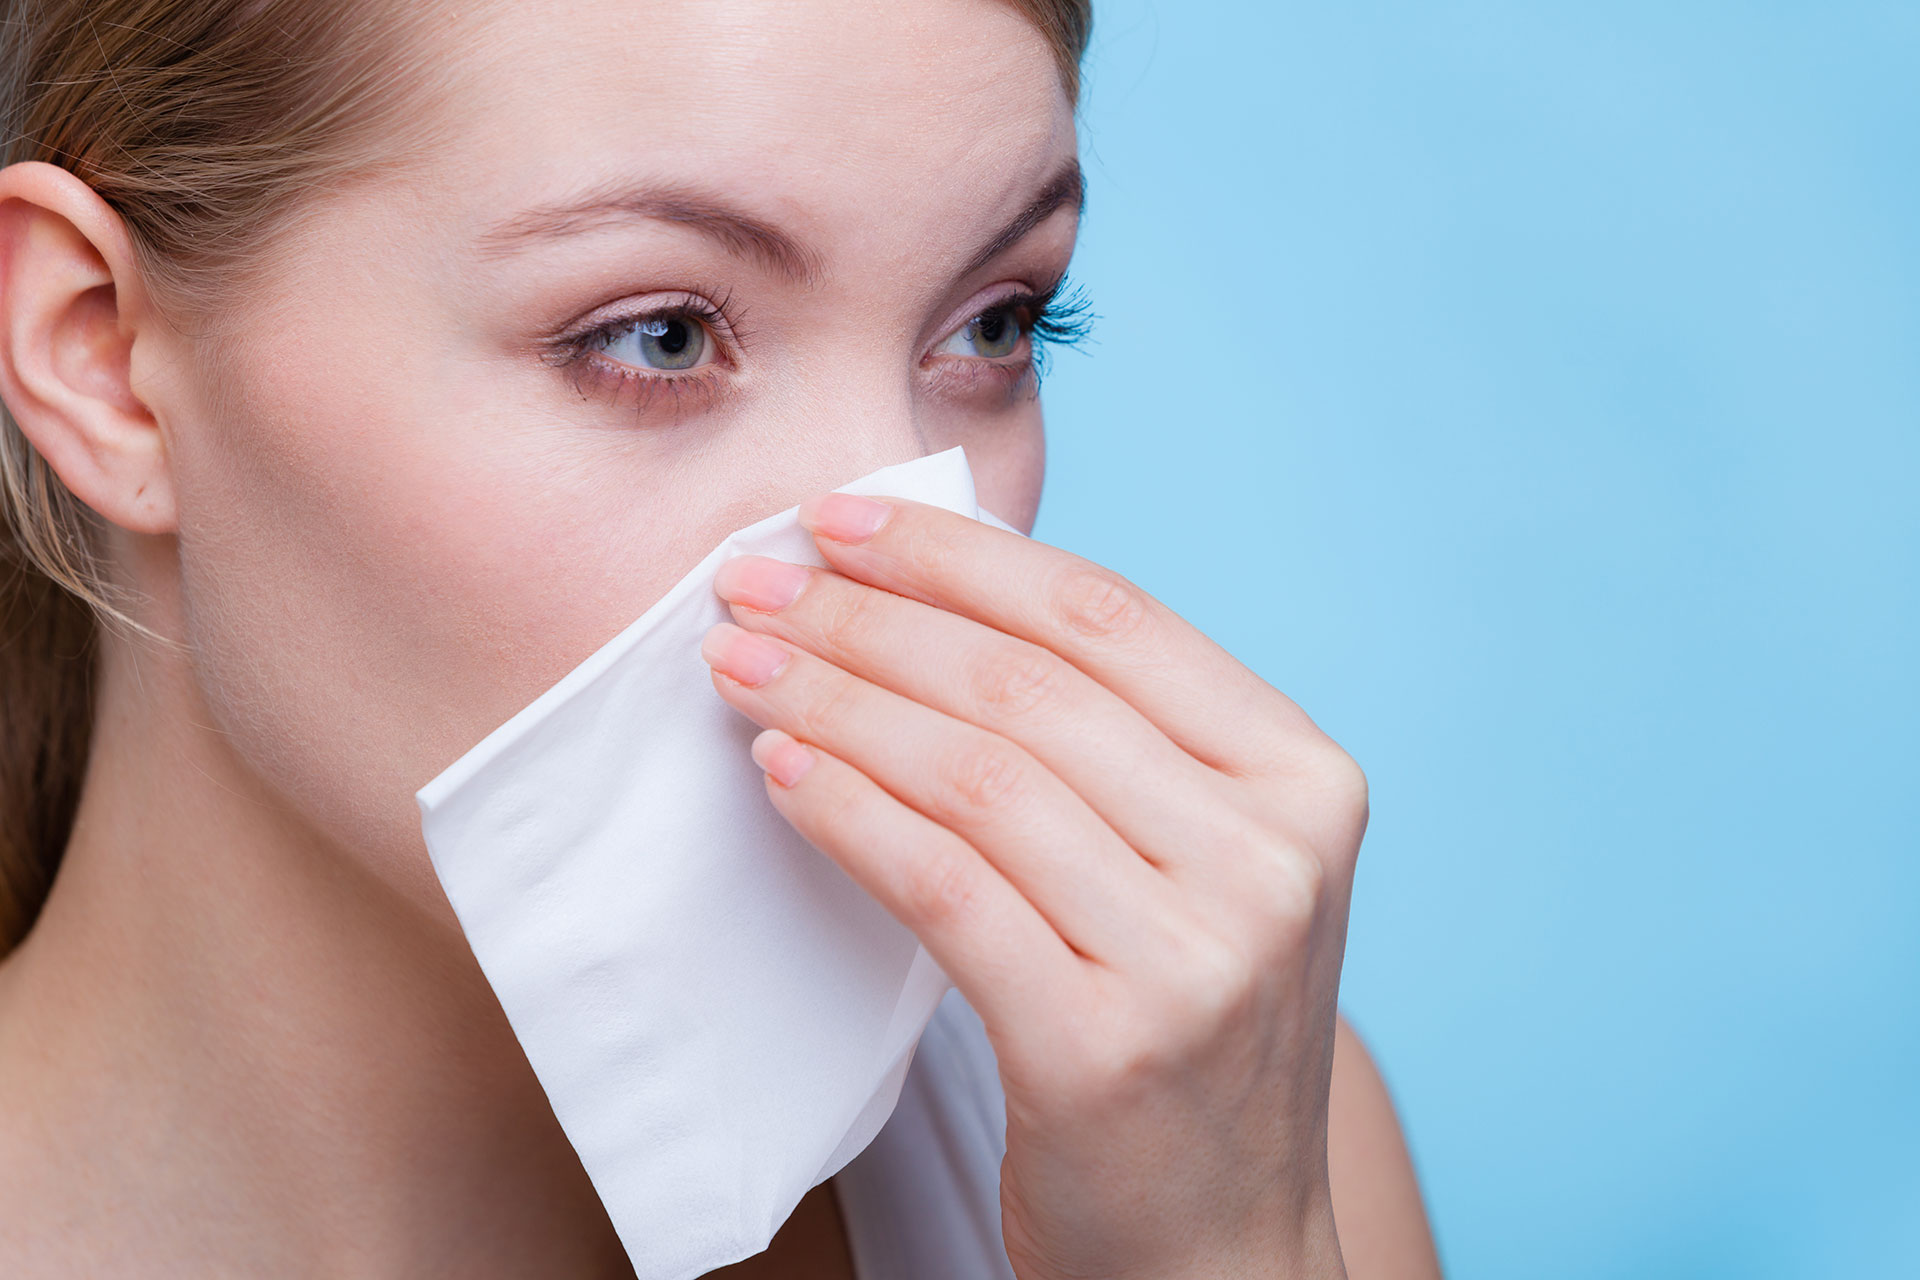 Is a Nosebleed a Serious Condition?